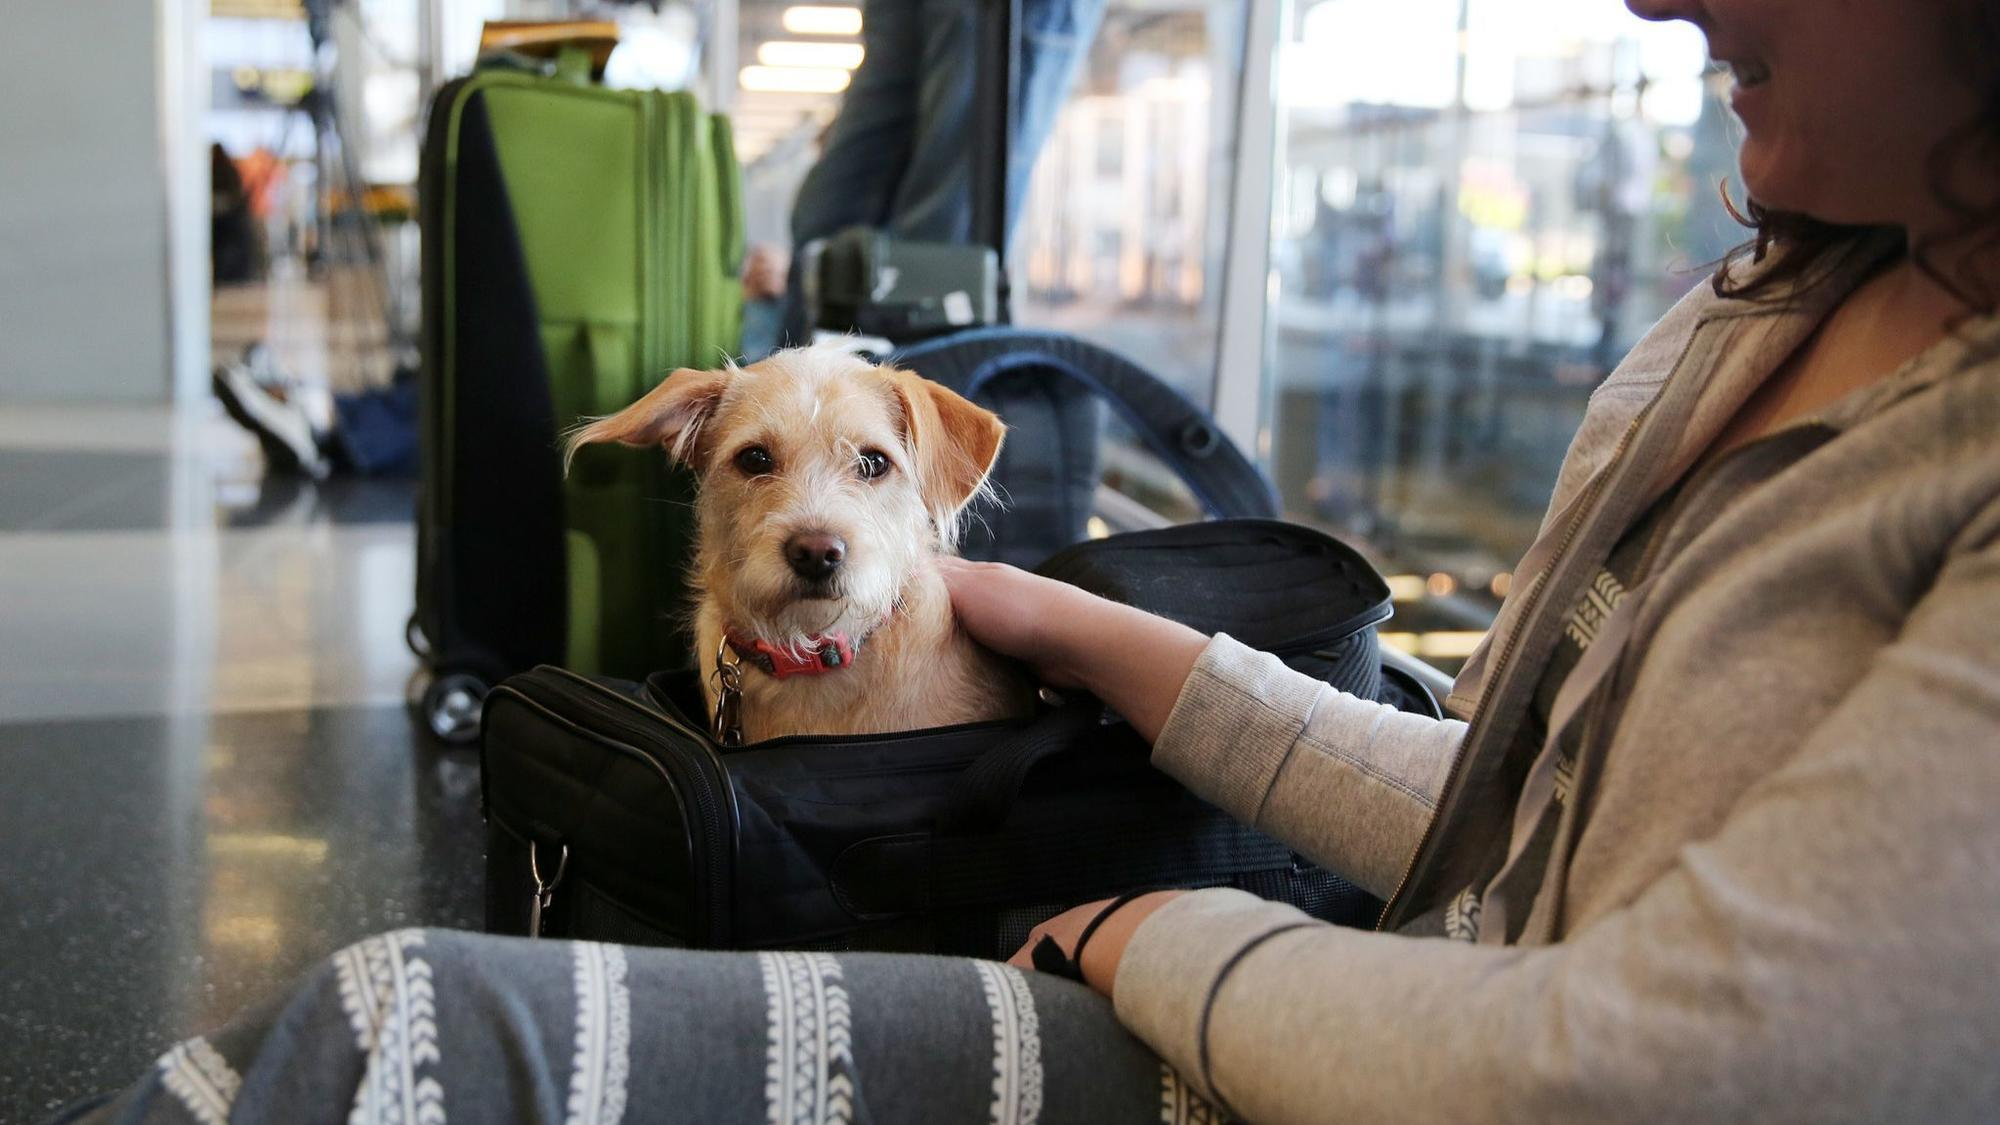 United places new restrictions on pets traveling in cargo ...